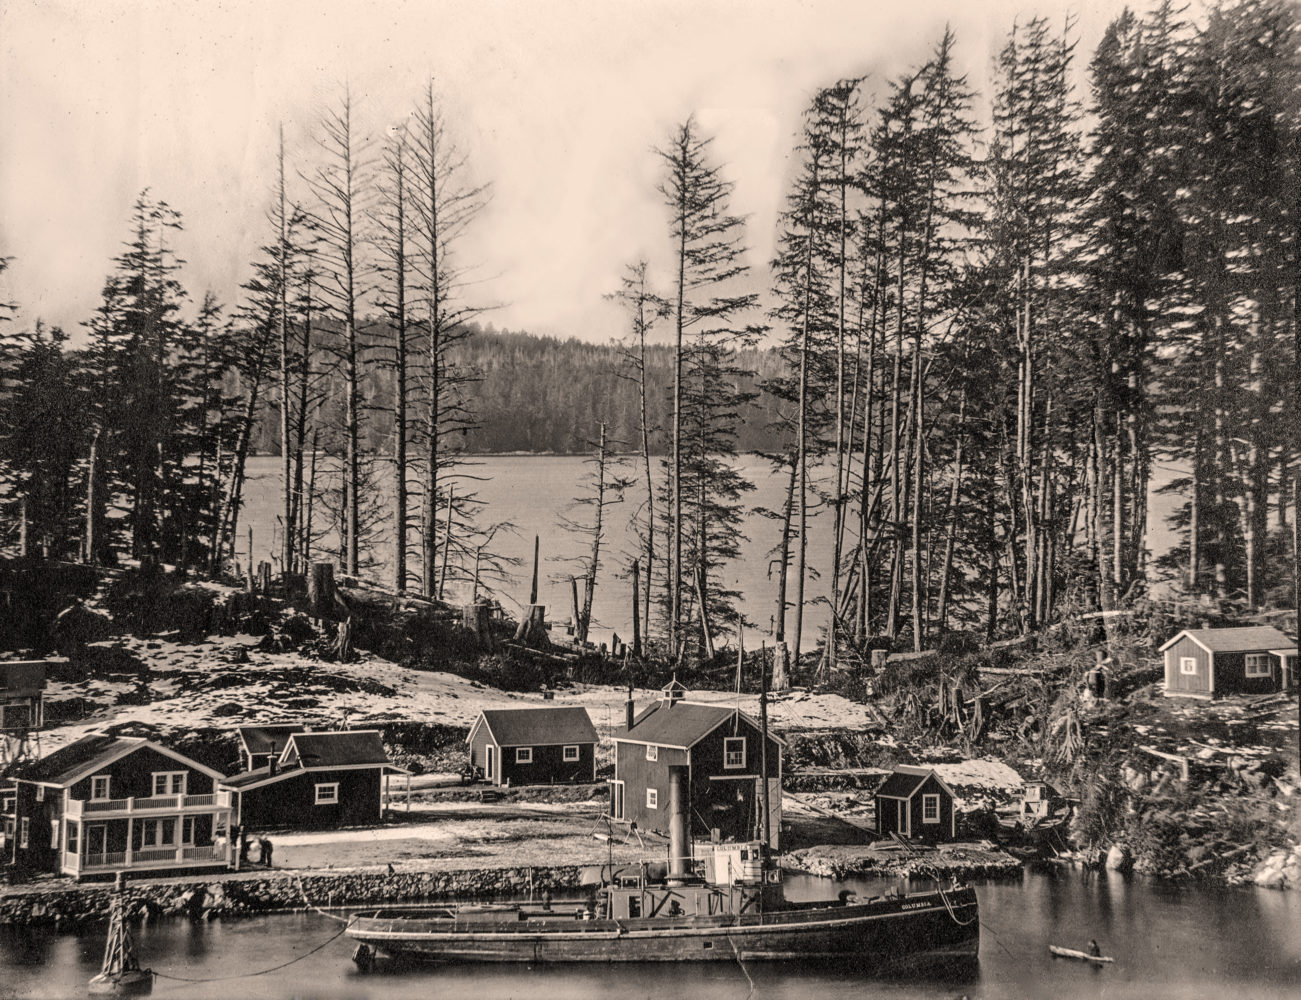 #19 - The Columbia at anchor in front of the Bamfield Lifeboat Station